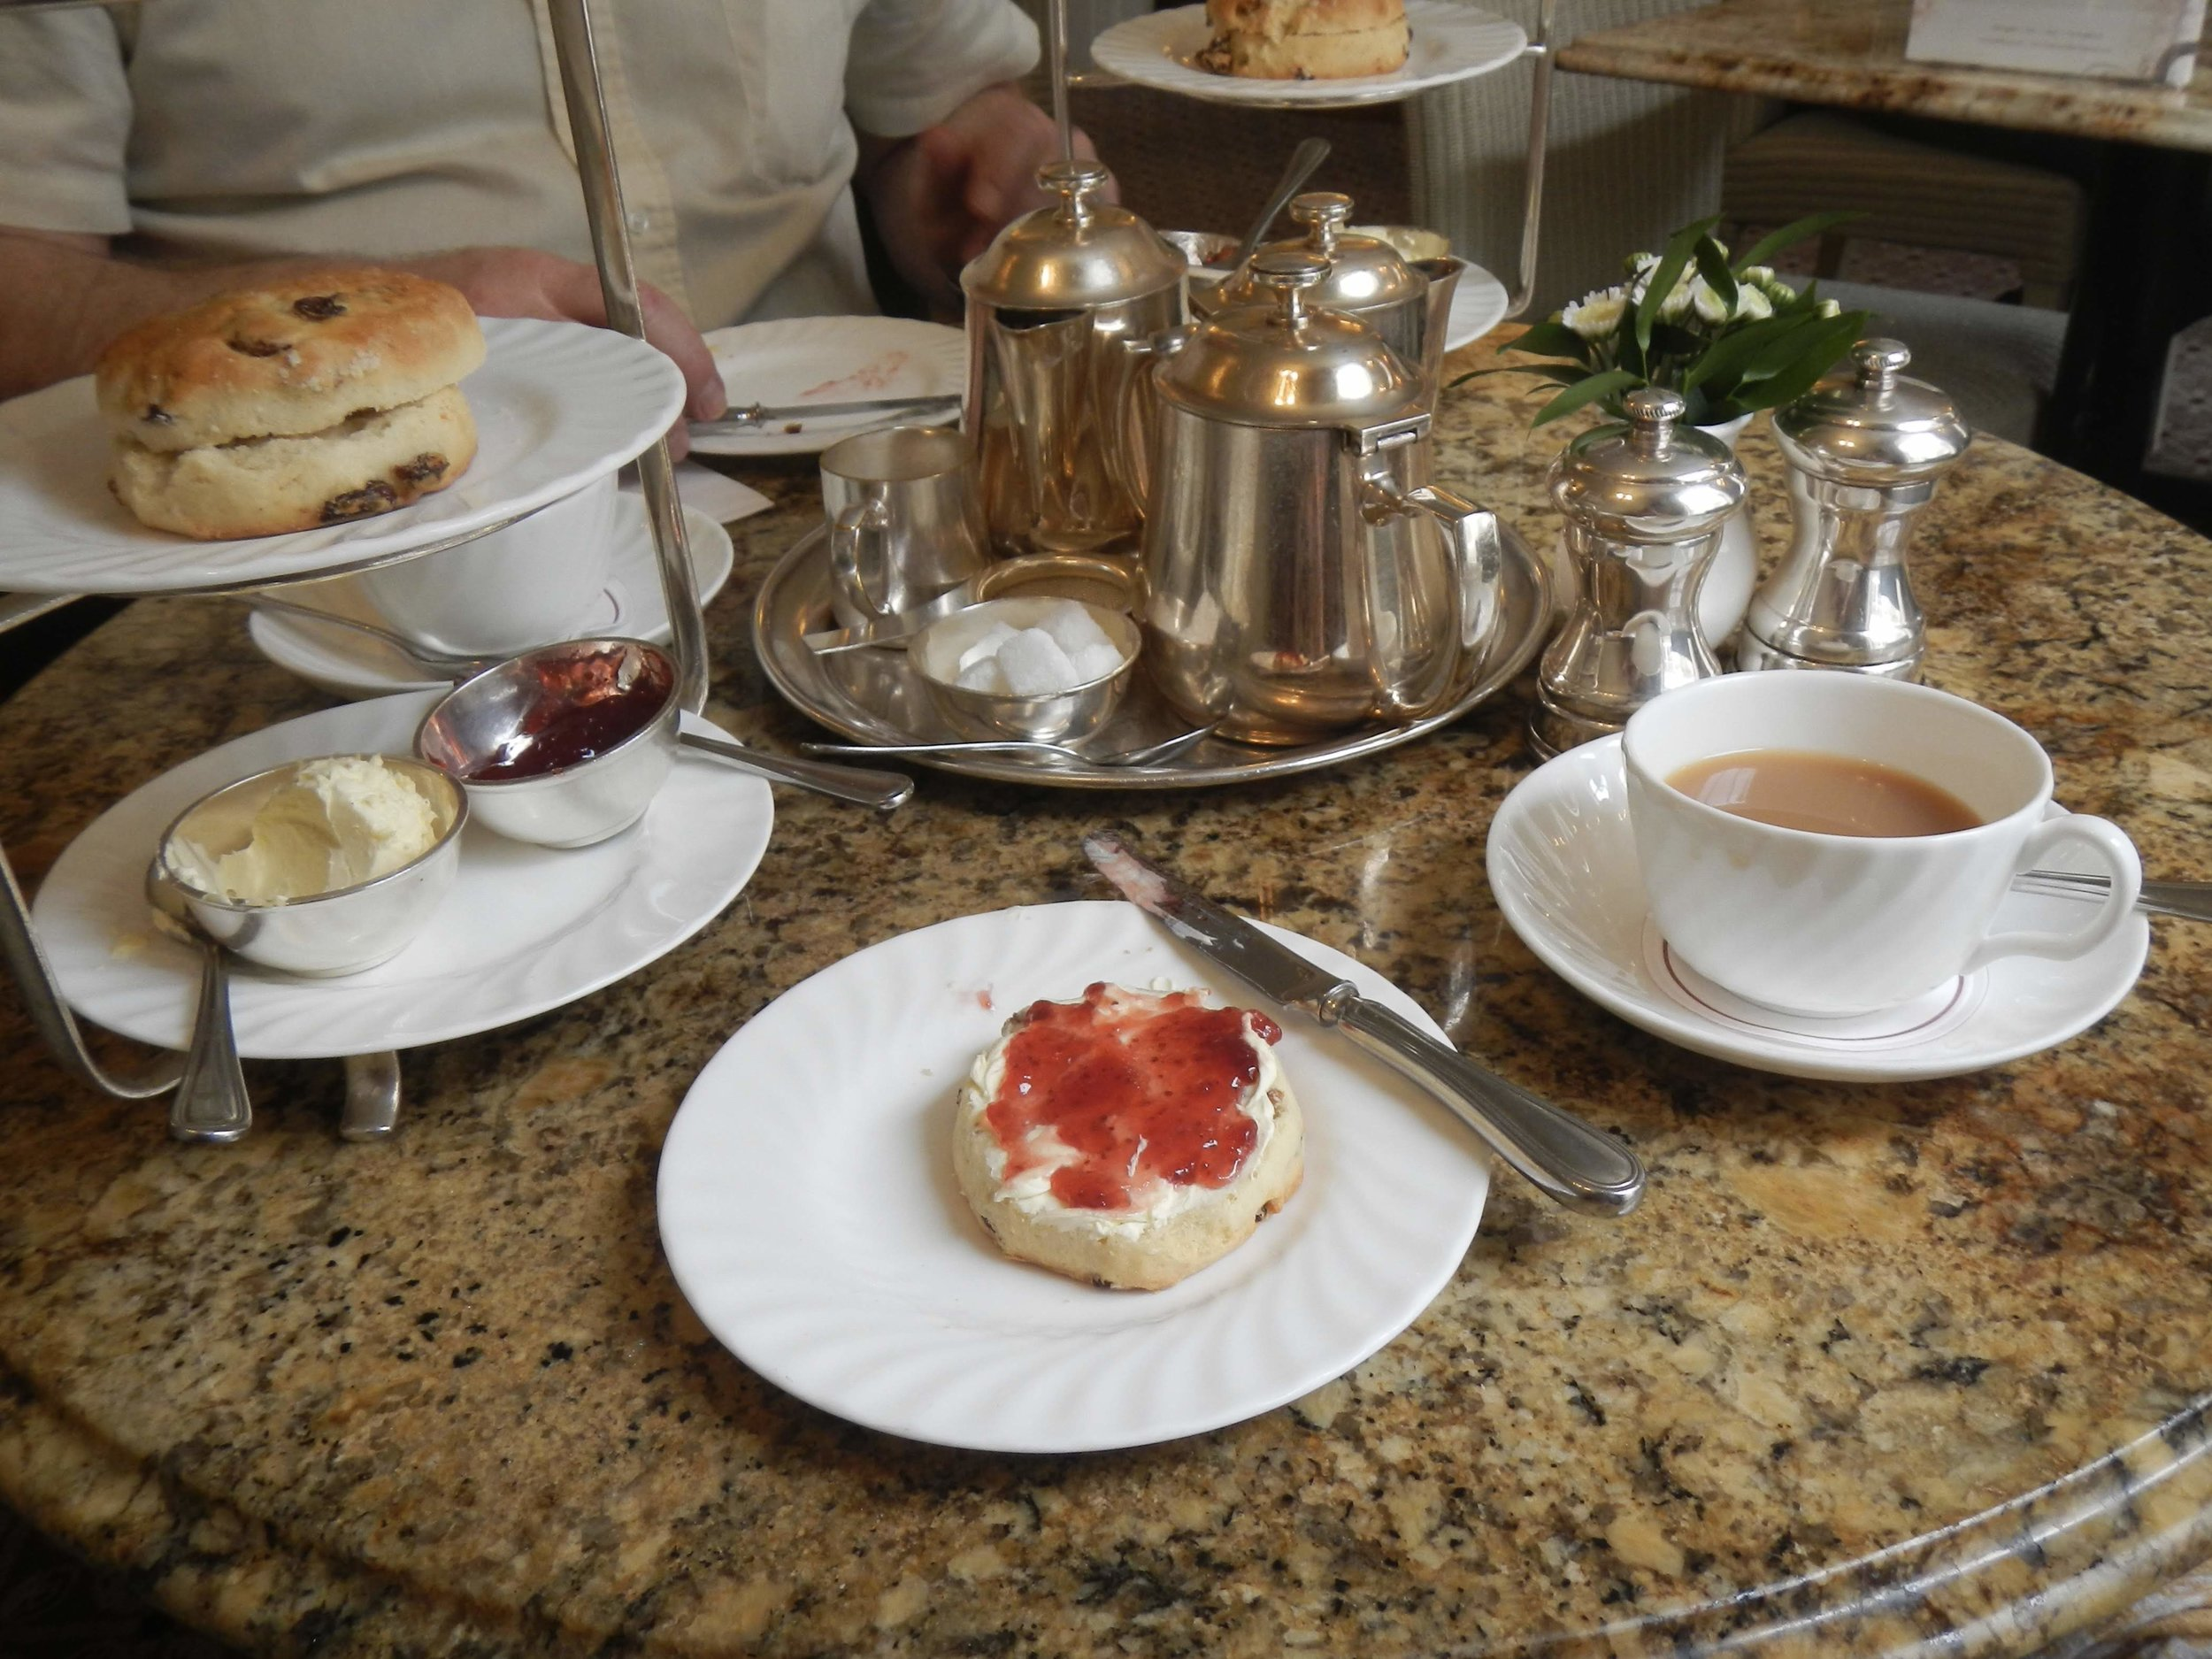 afternoon tea at Betty's, scones with clotted cream and strawberry preserves - so good!